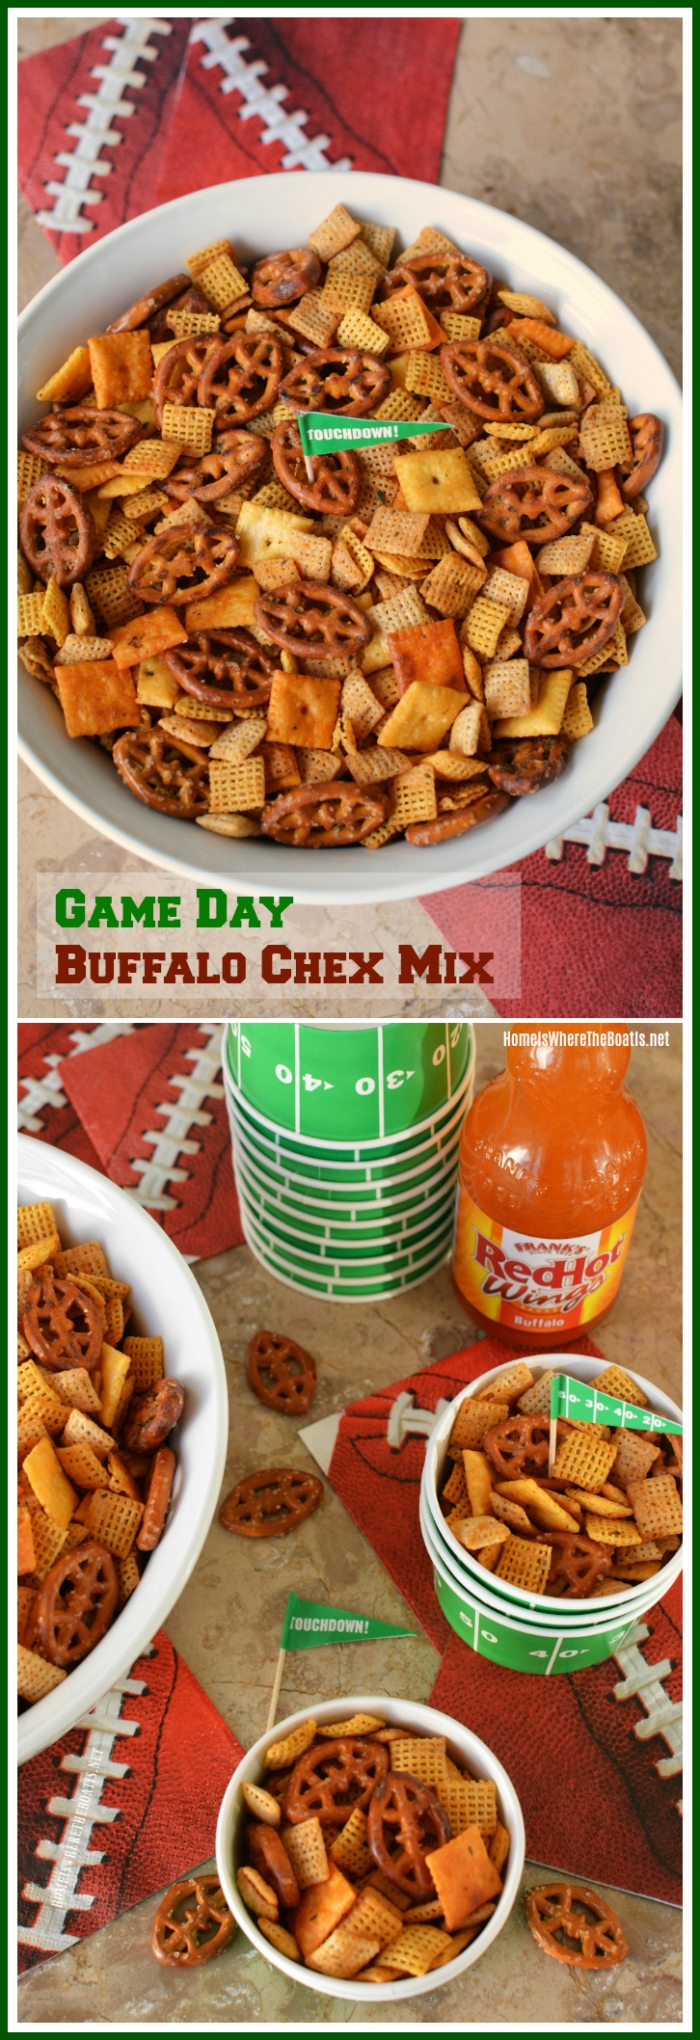 Game Day Buffalo Chex Mix! Easy party recipe for your line up of game day food! | homeiswheretheboatis.net #easyrecipe #footballfood #superbowlparty #tailgate #buffalo